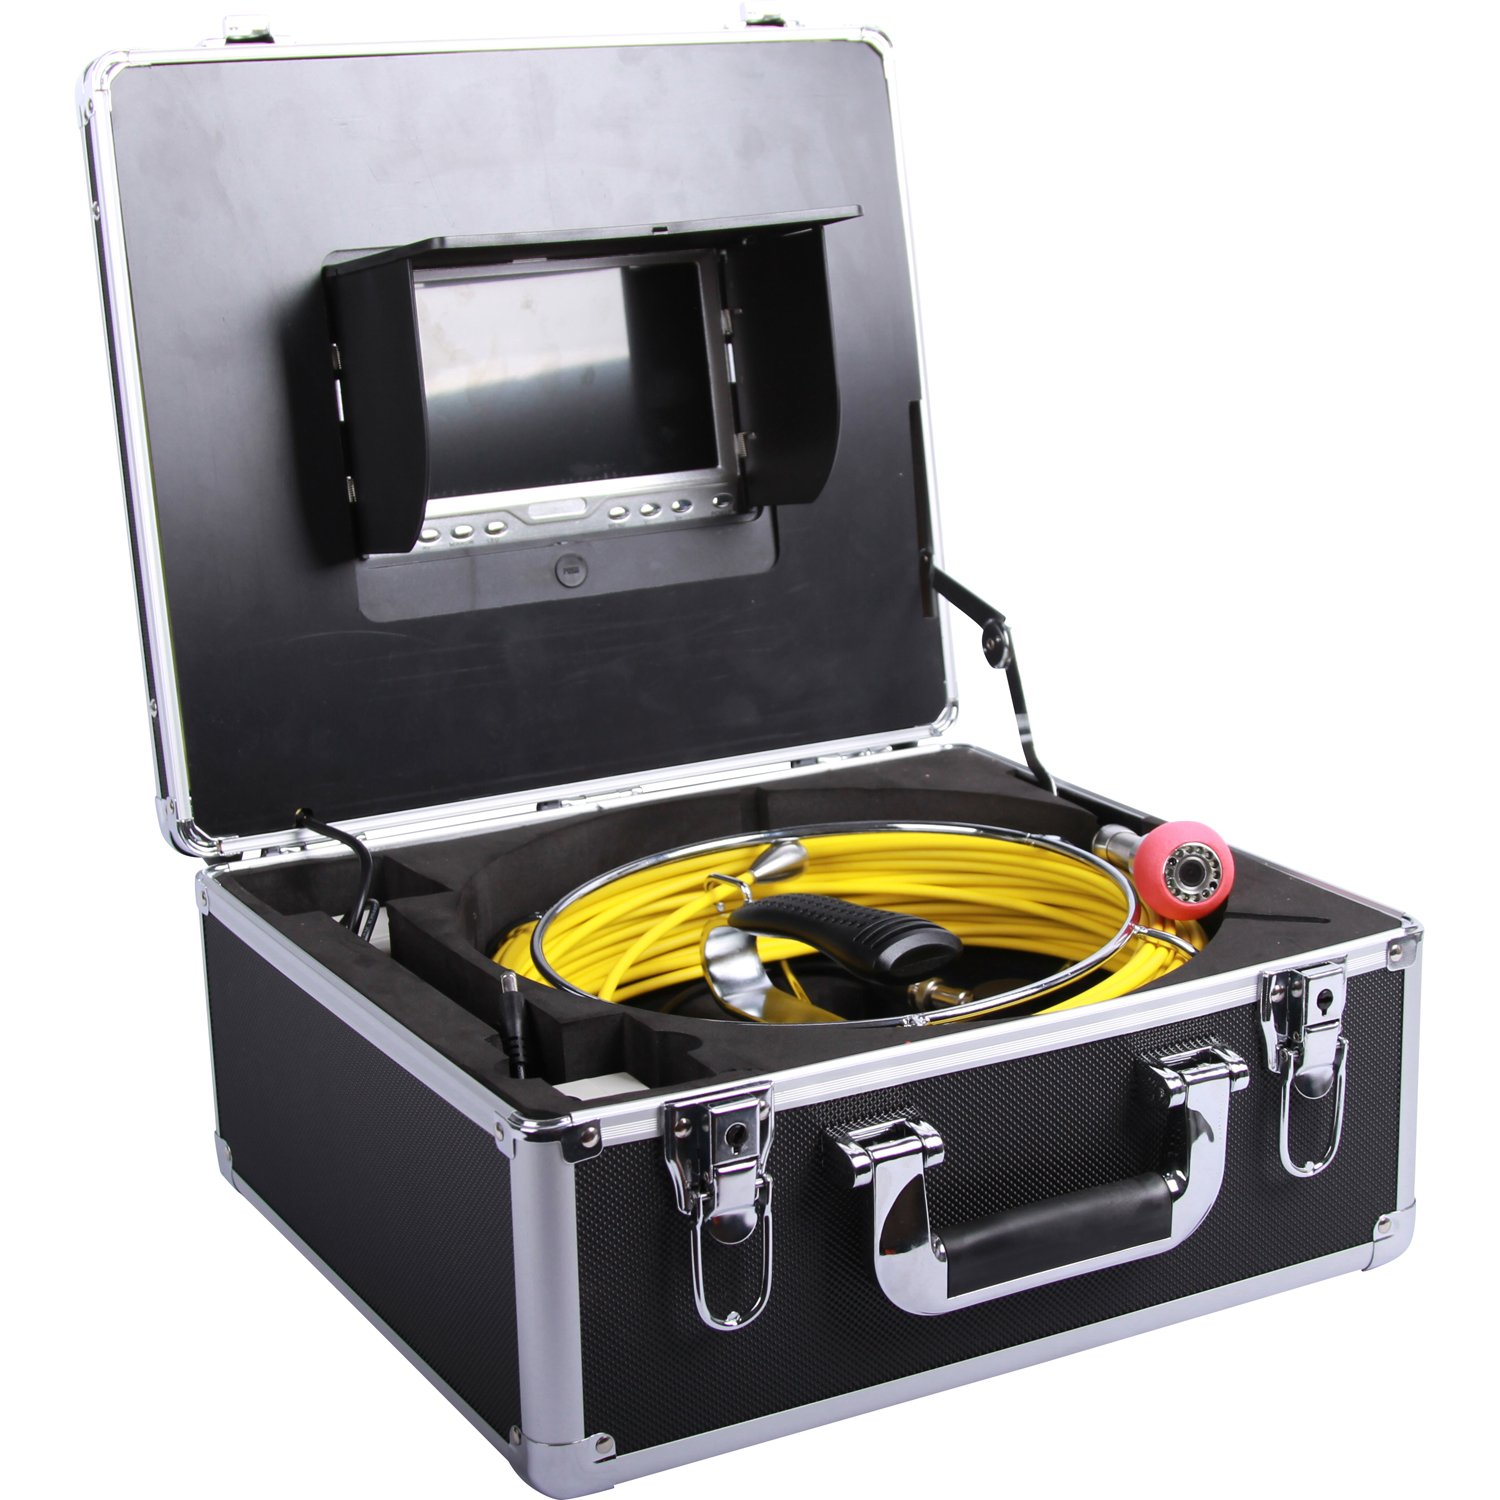 Vanxse Pipe Inspection Camera Waterproof IP68 20meters Sewer Drain Industrial Endoscope Video Inspection System 7 Inch LCD Monitor 1000TVL Sony CCD Video Snake Camera D70120 by Vanxse